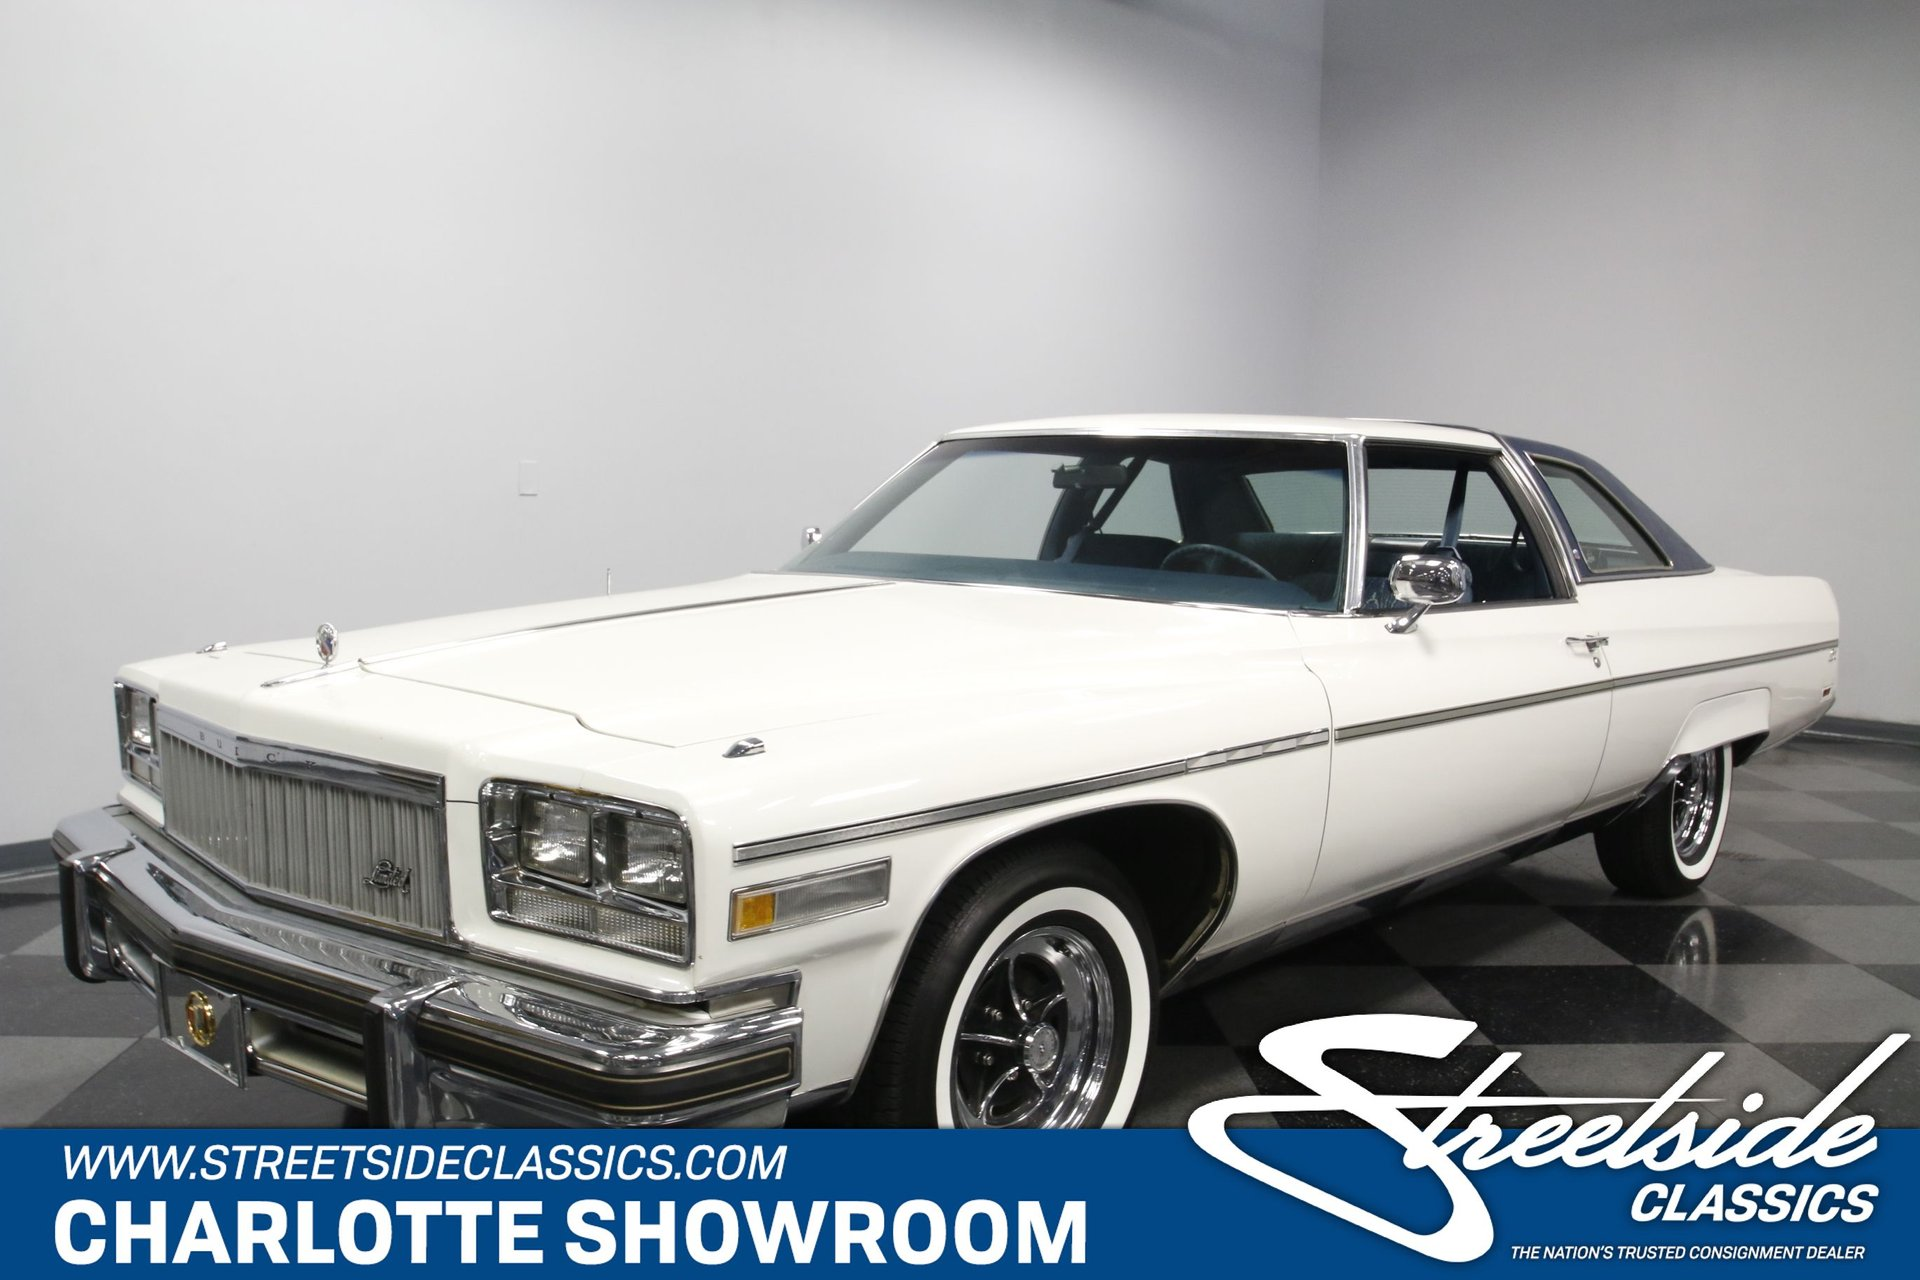 1976 buick electra streetside classics the nation s trusted classic car consignment dealer 1976 buick electra streetside